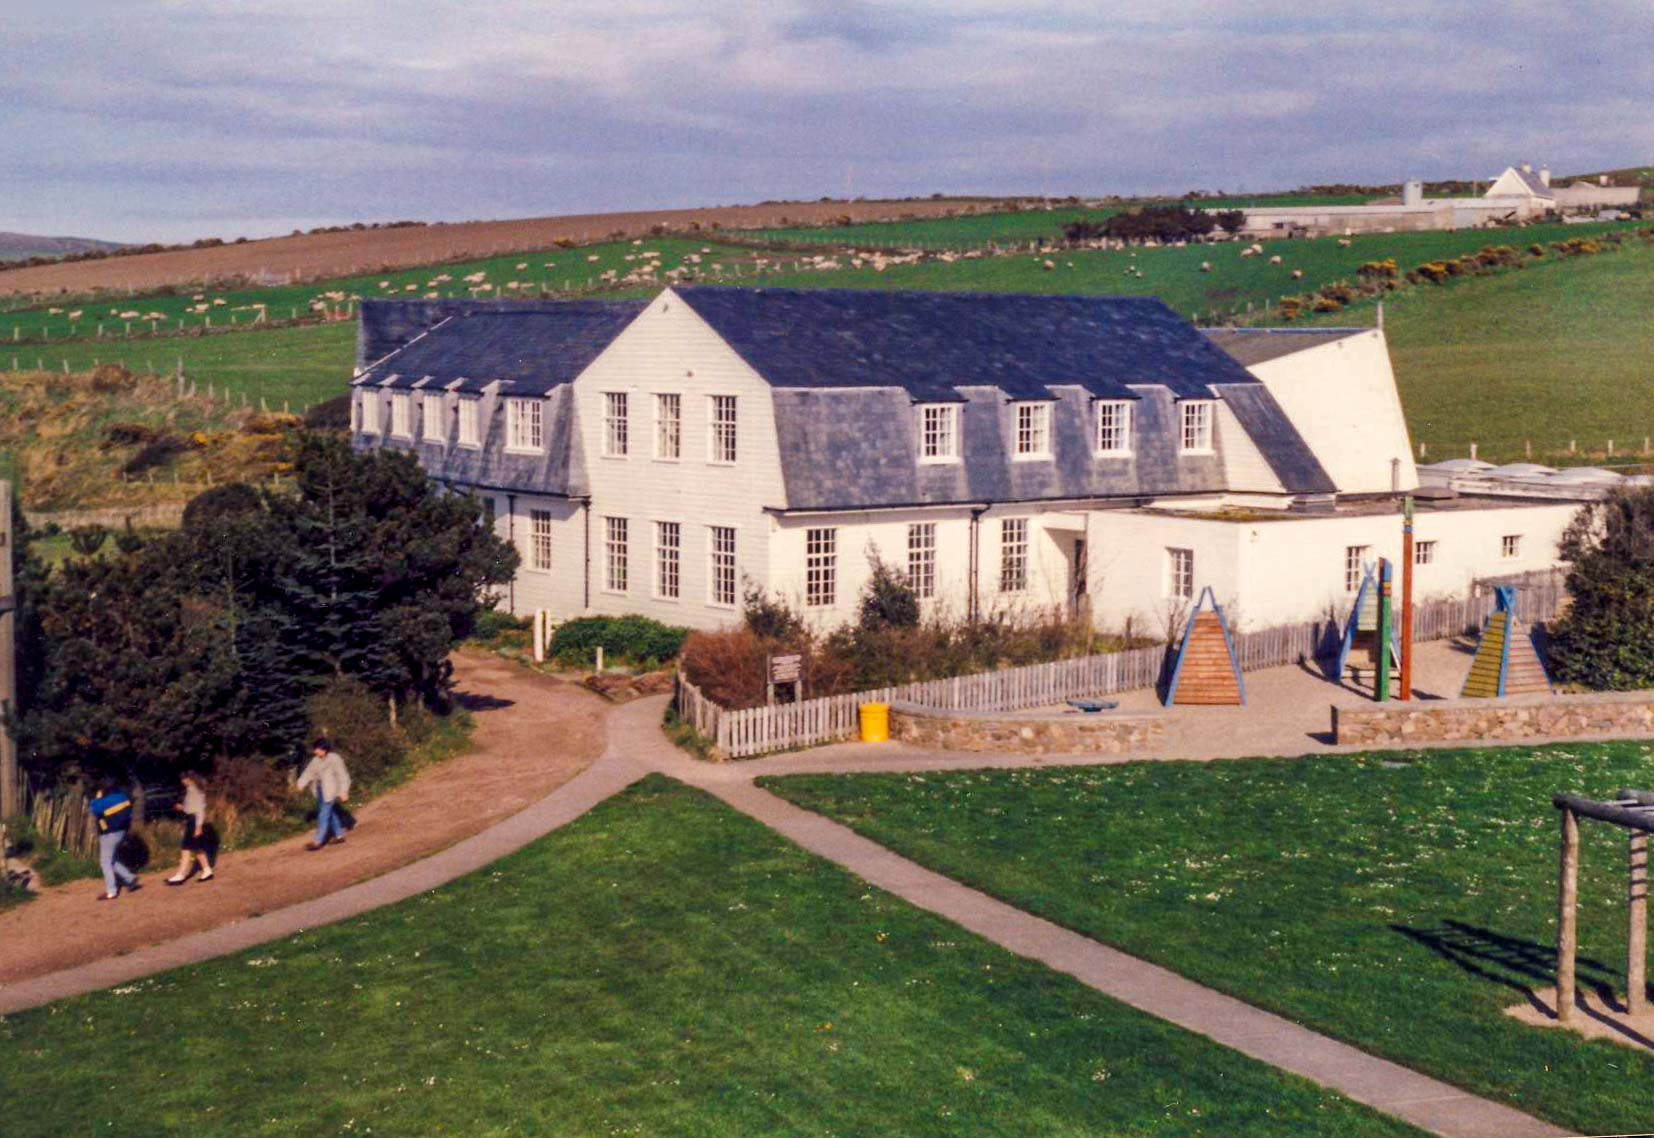 Corrymeela House, Ballycastle, County Antrim, as it was during the 1980s.